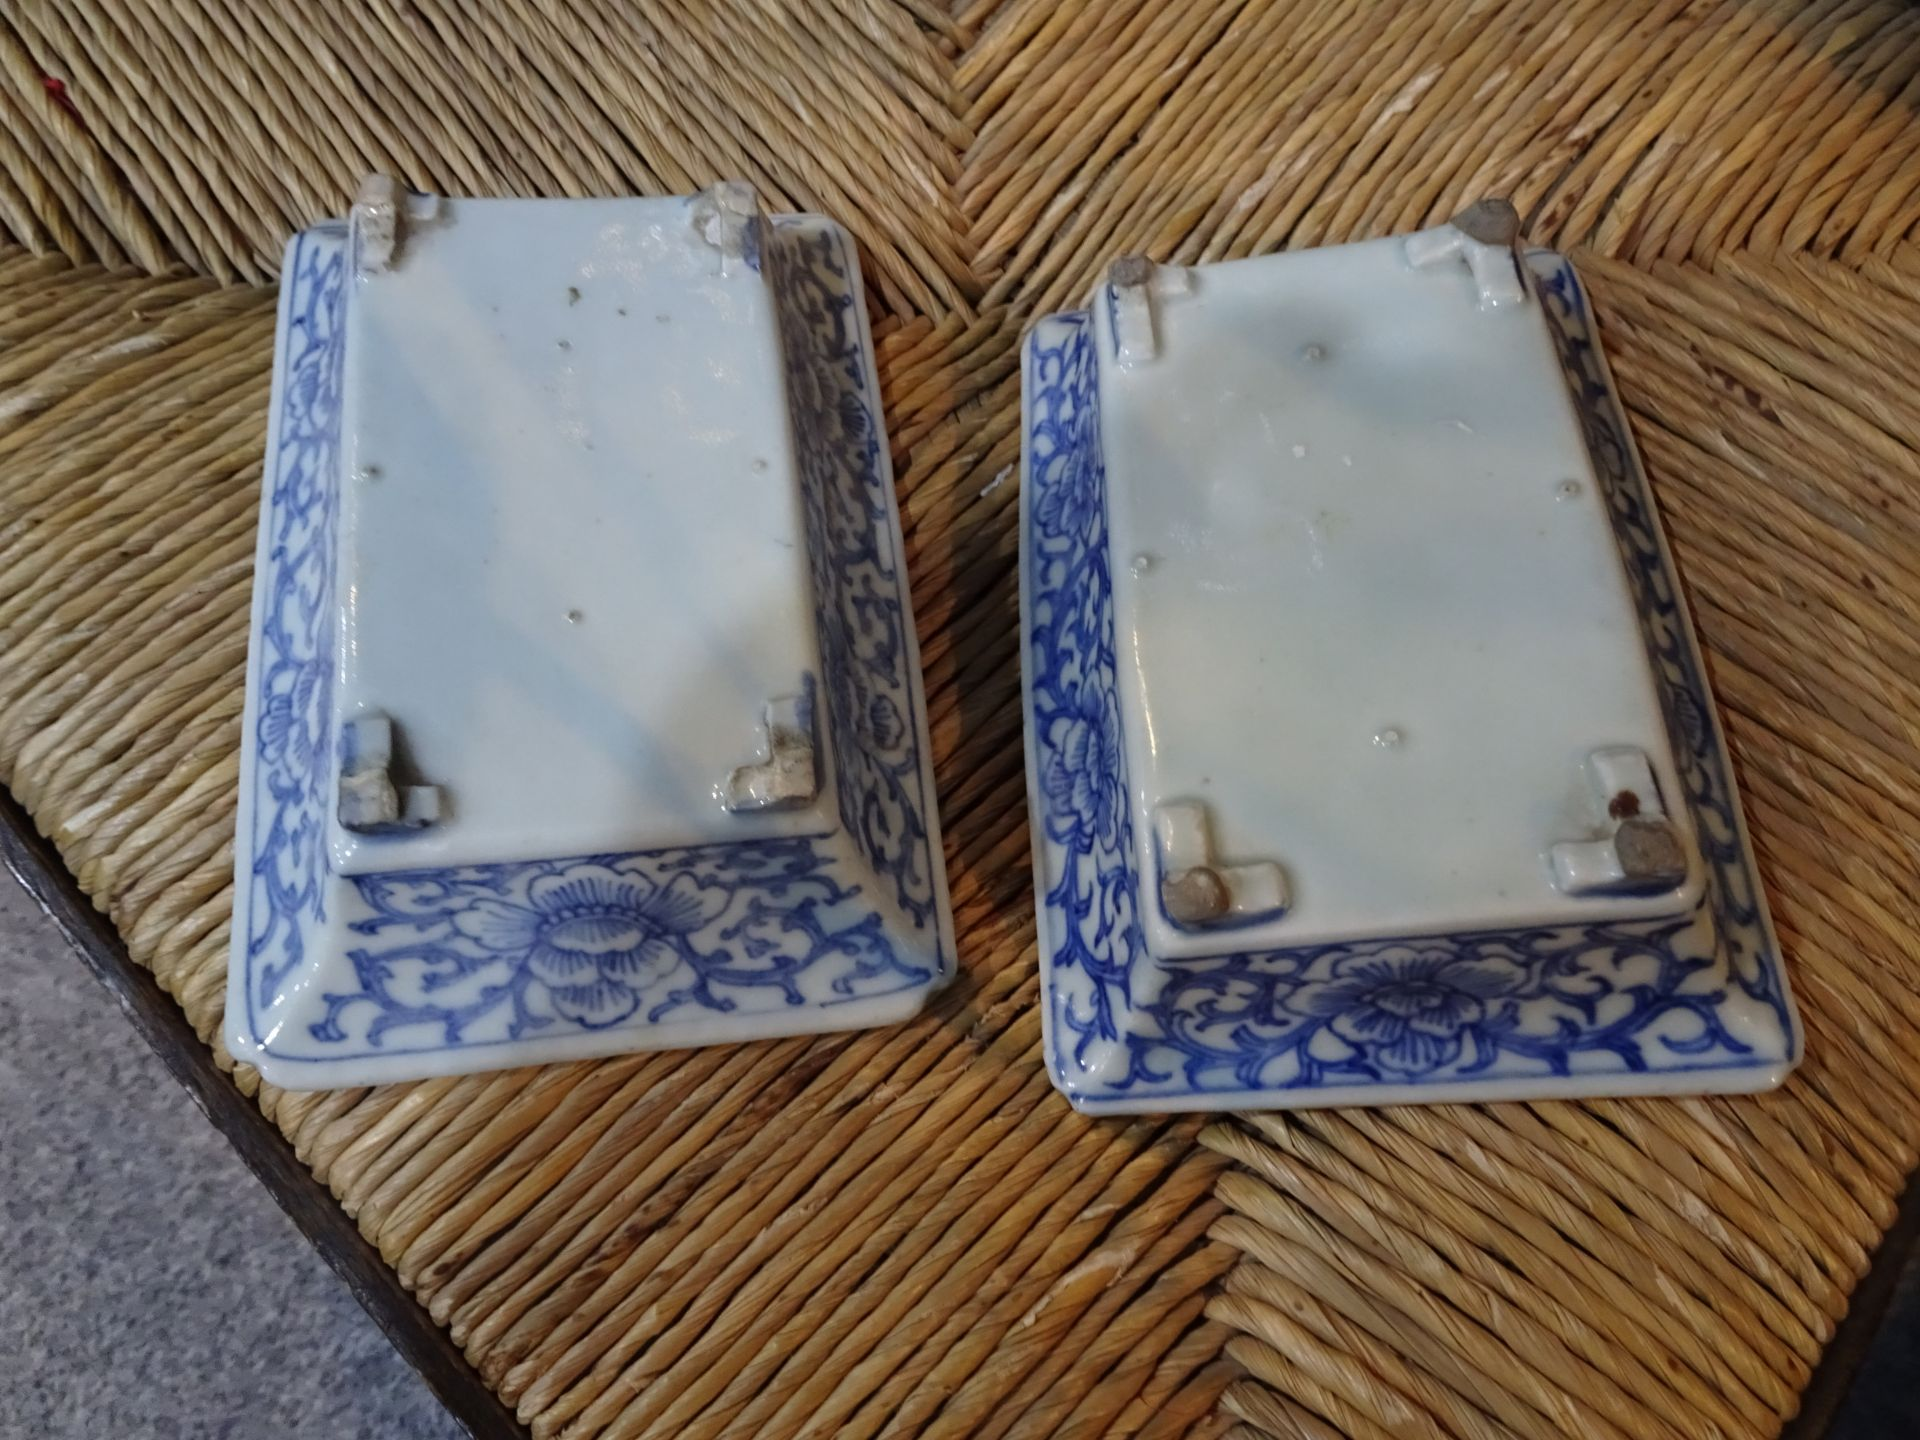 A NEAR PAIR OF CHINESE BLUE AND WHITE PLANTERS, rectangular with bracket feet, the exteriors painted - Bild 2 aus 3